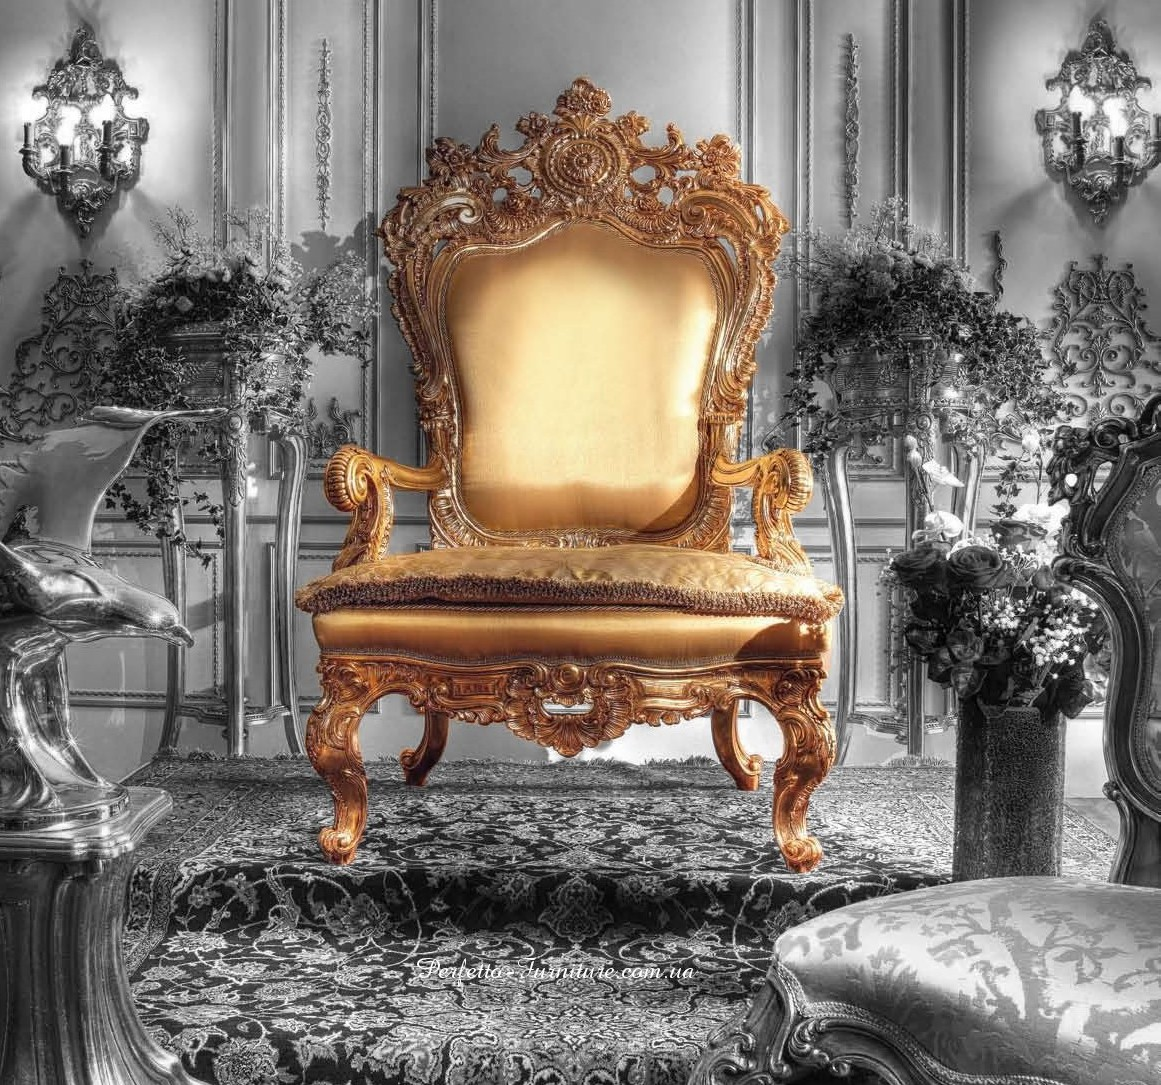 Throne Royal Armchair For kings  Prince and QueensTop